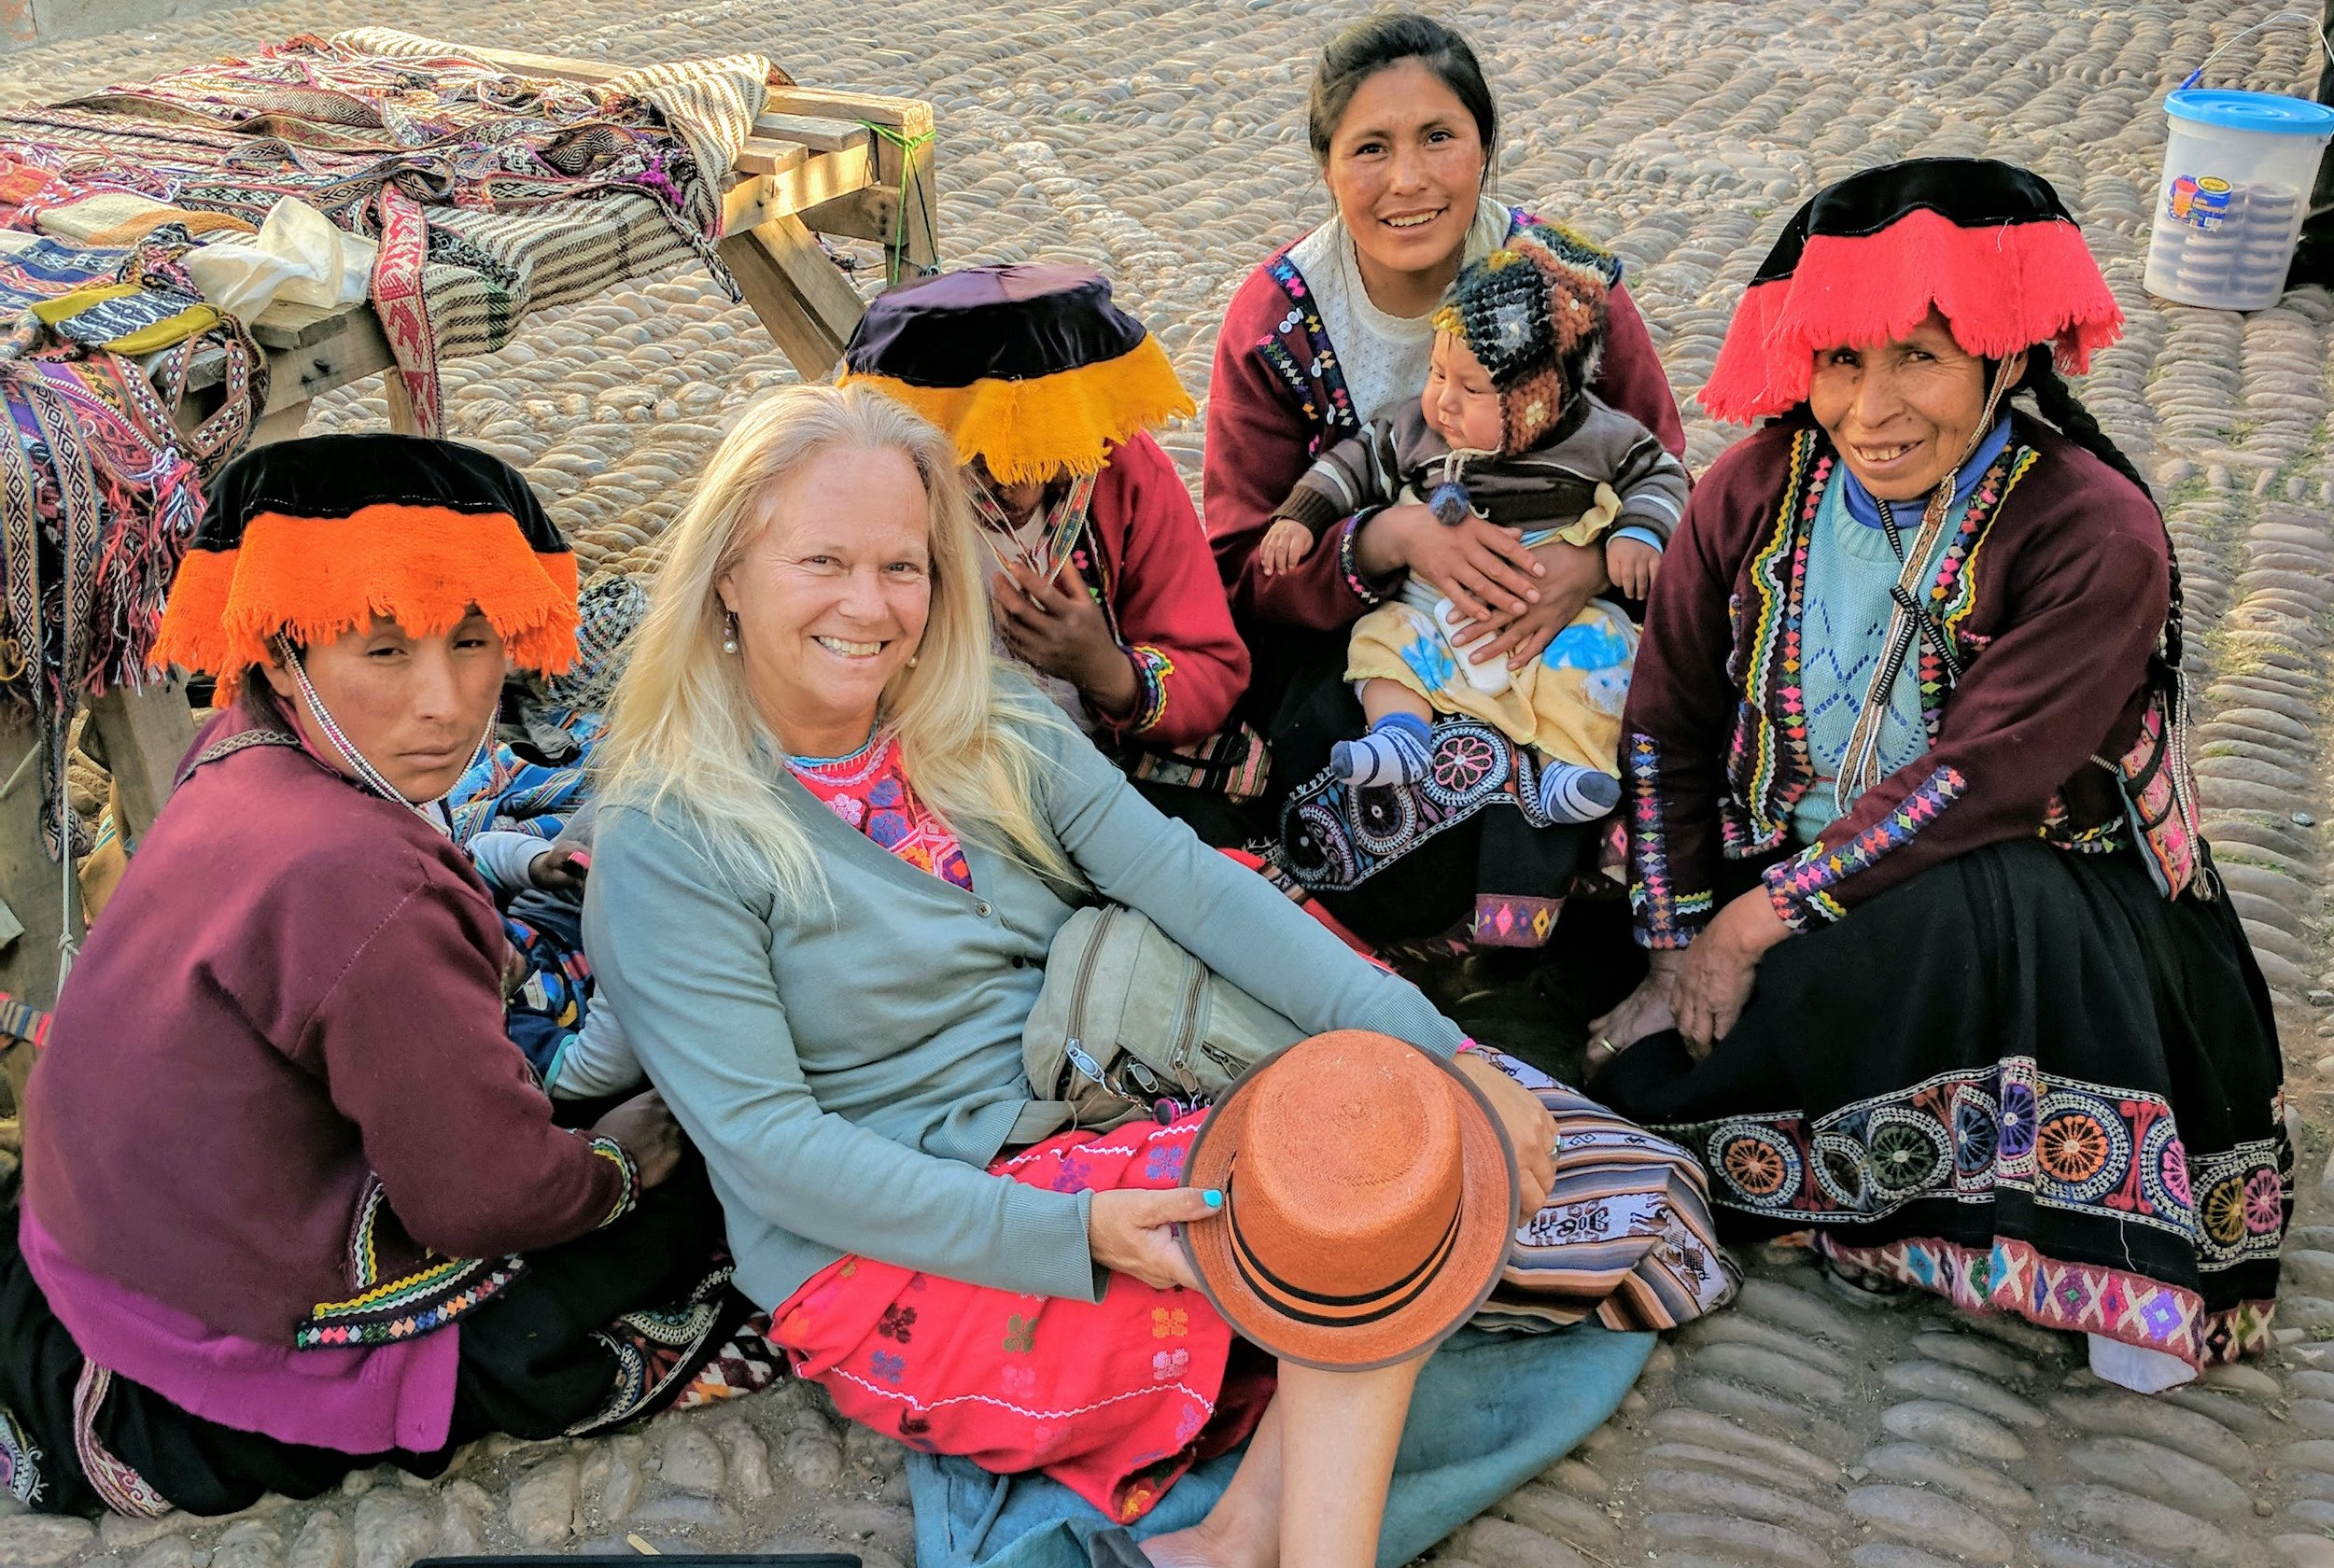 In the Sacred Valley of Peru, Bibi commissioned a Quechua-speaking artisans to 'illustrate' her children's book with woven belts that use symbols to tell a story.